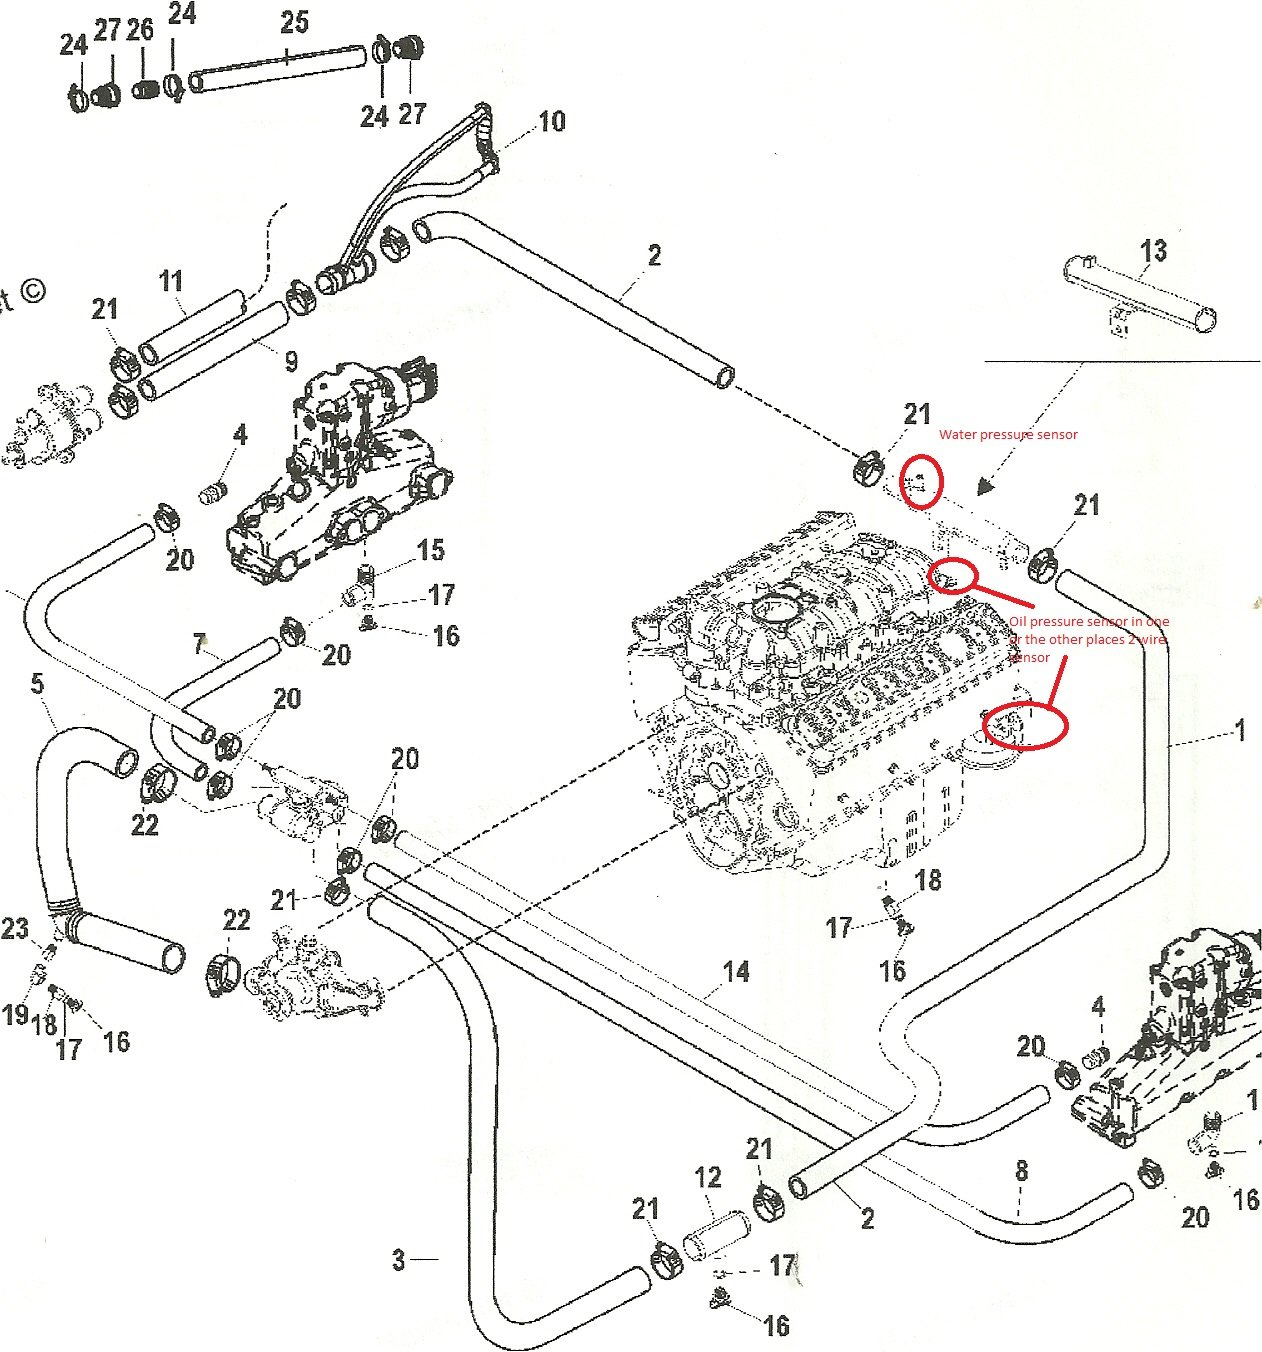 Exhaust Manifold 1 1 Petrol Getz Prime as well Subaru 2 5 L Engine Diagram Subaru Free Wiring Diagrams likewise Index besides Mypage 12 as well P 0996b43f8037a9d9. on oil pump location